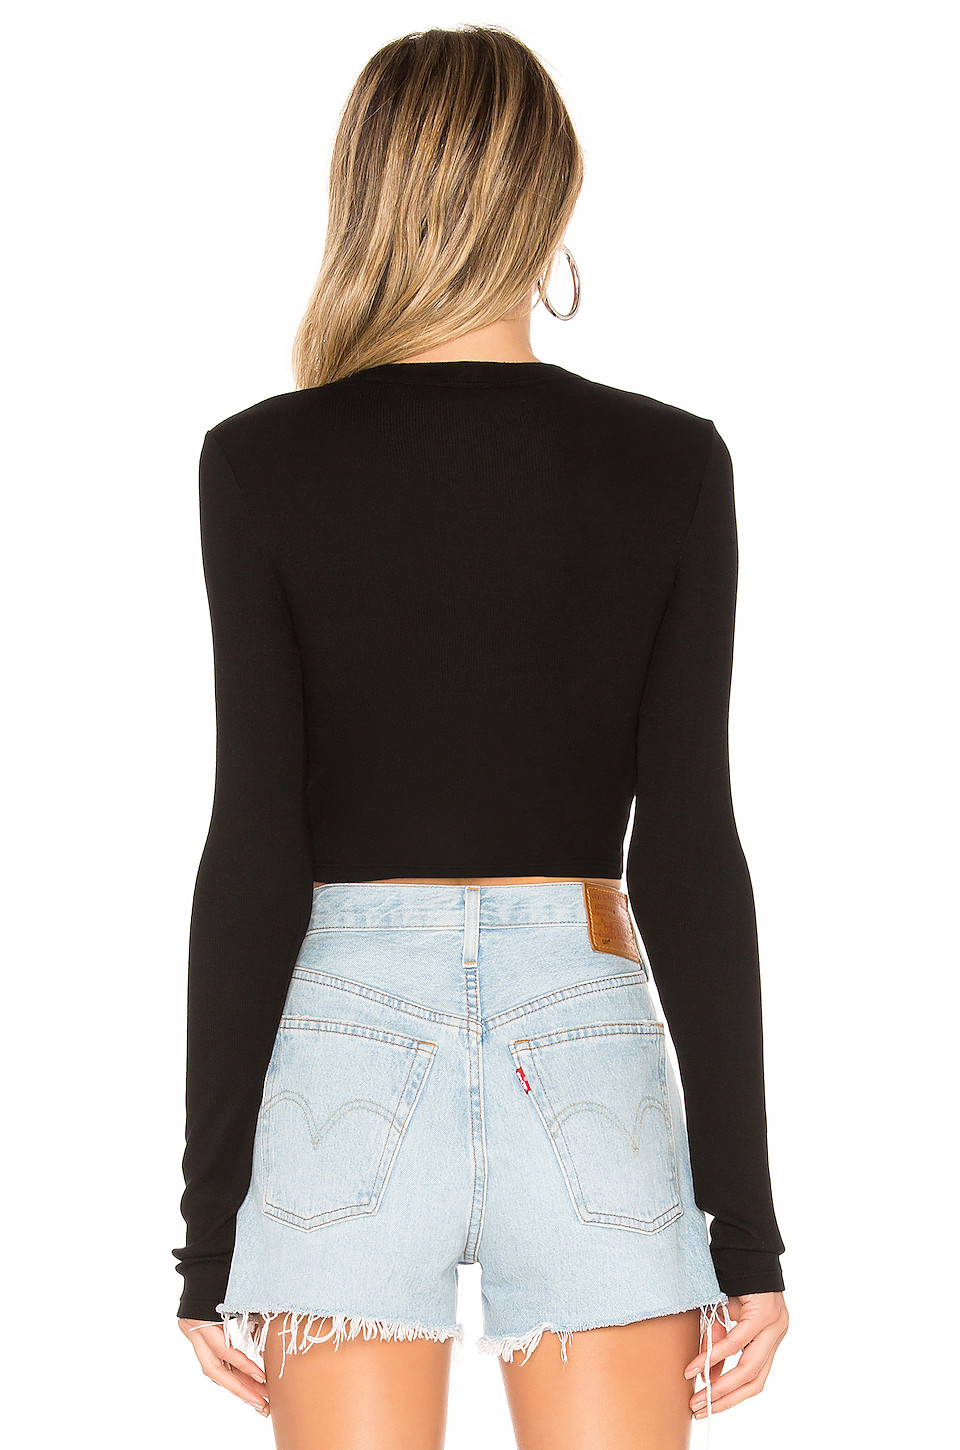 COTTON CITIZEN Verona Crop Shirt